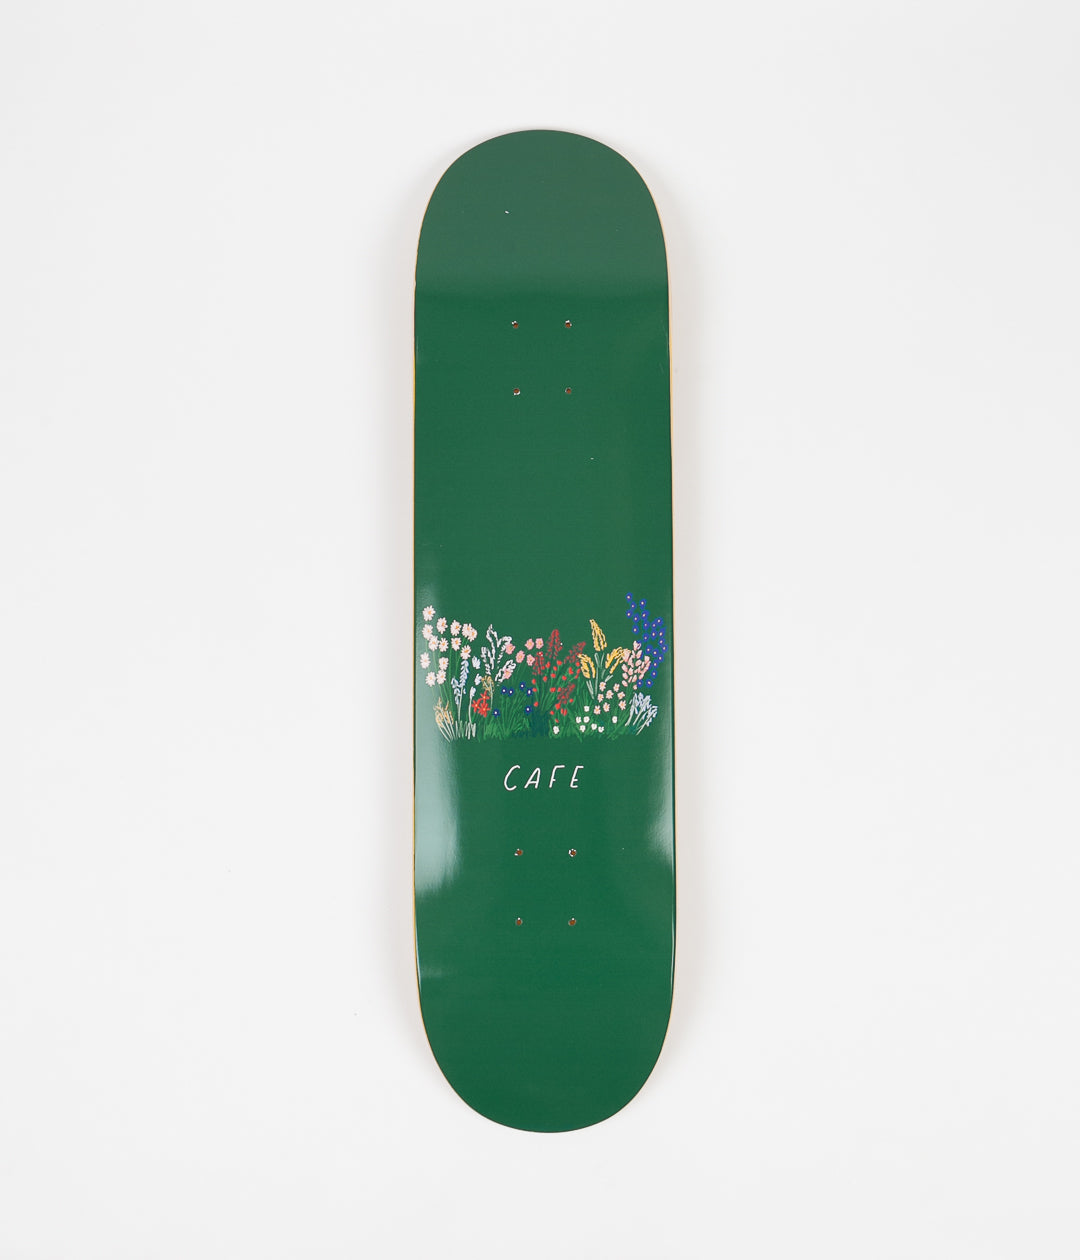 Skateboard Cafe Flower Bed Deck - Forest Green - 8.125""